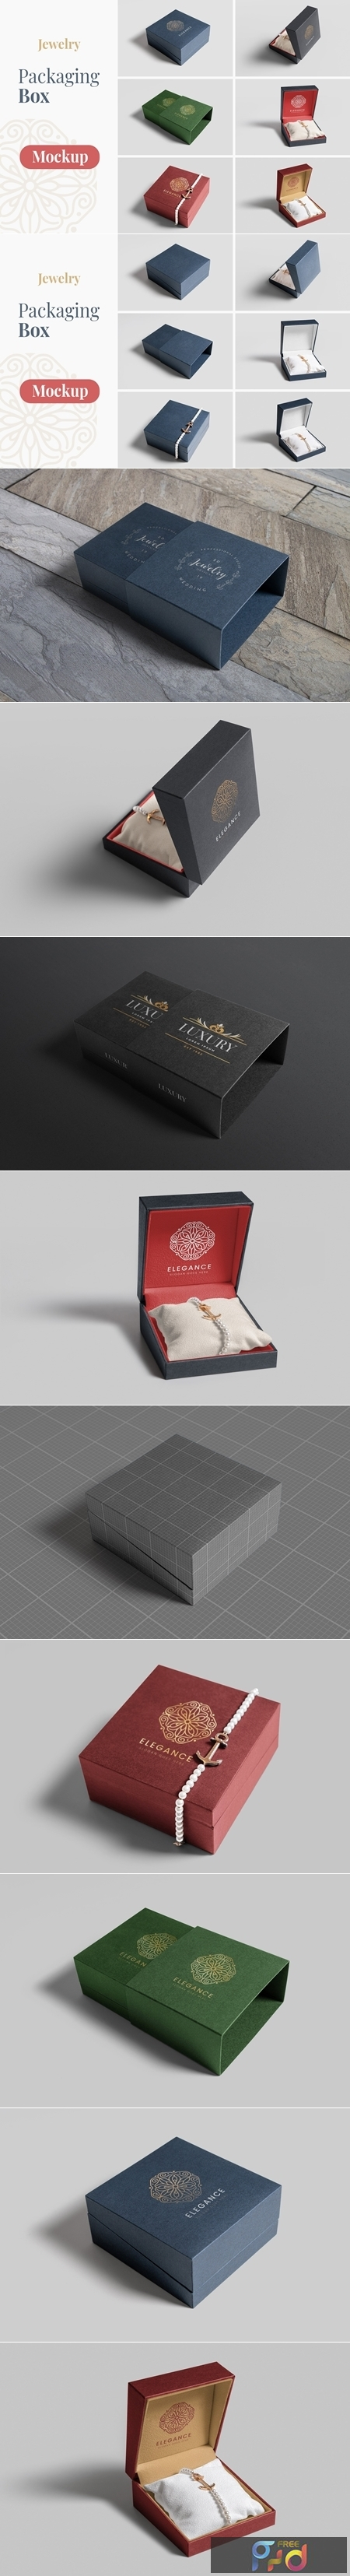 Jewelry Packaging Box Mockups 4554066 1